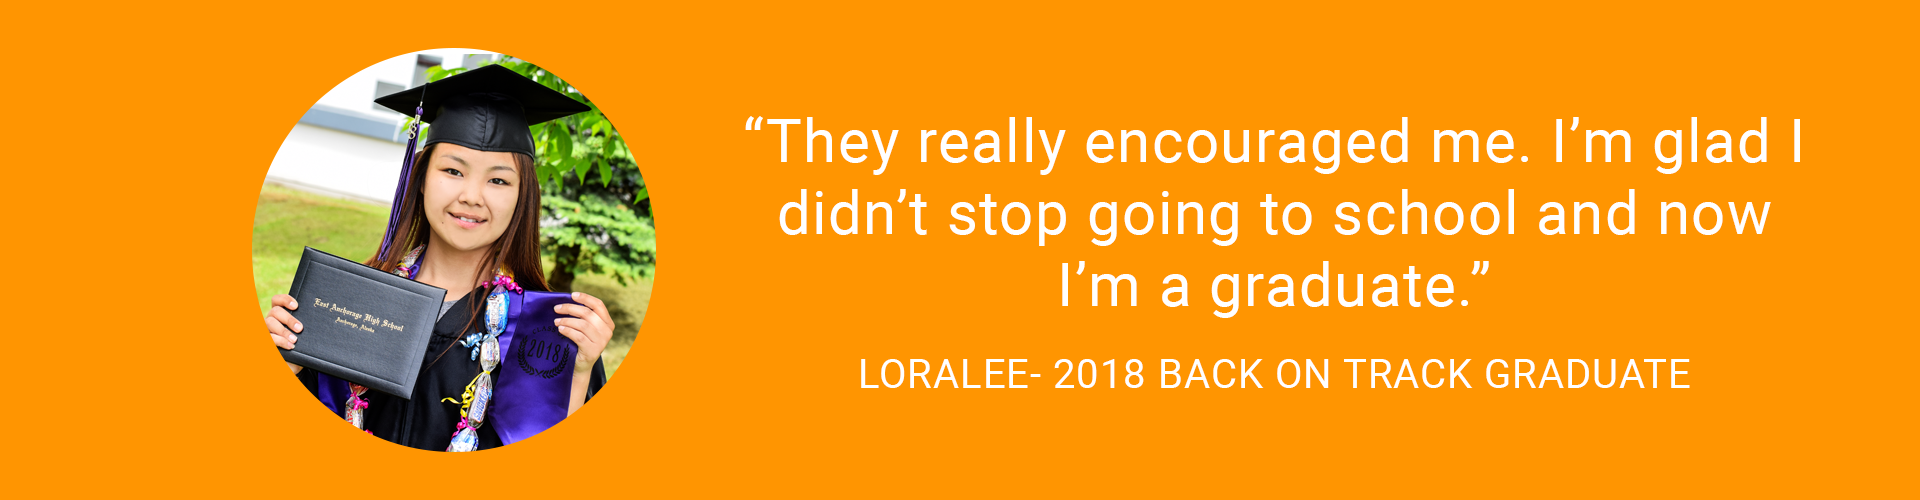 LORALEE QUOTE